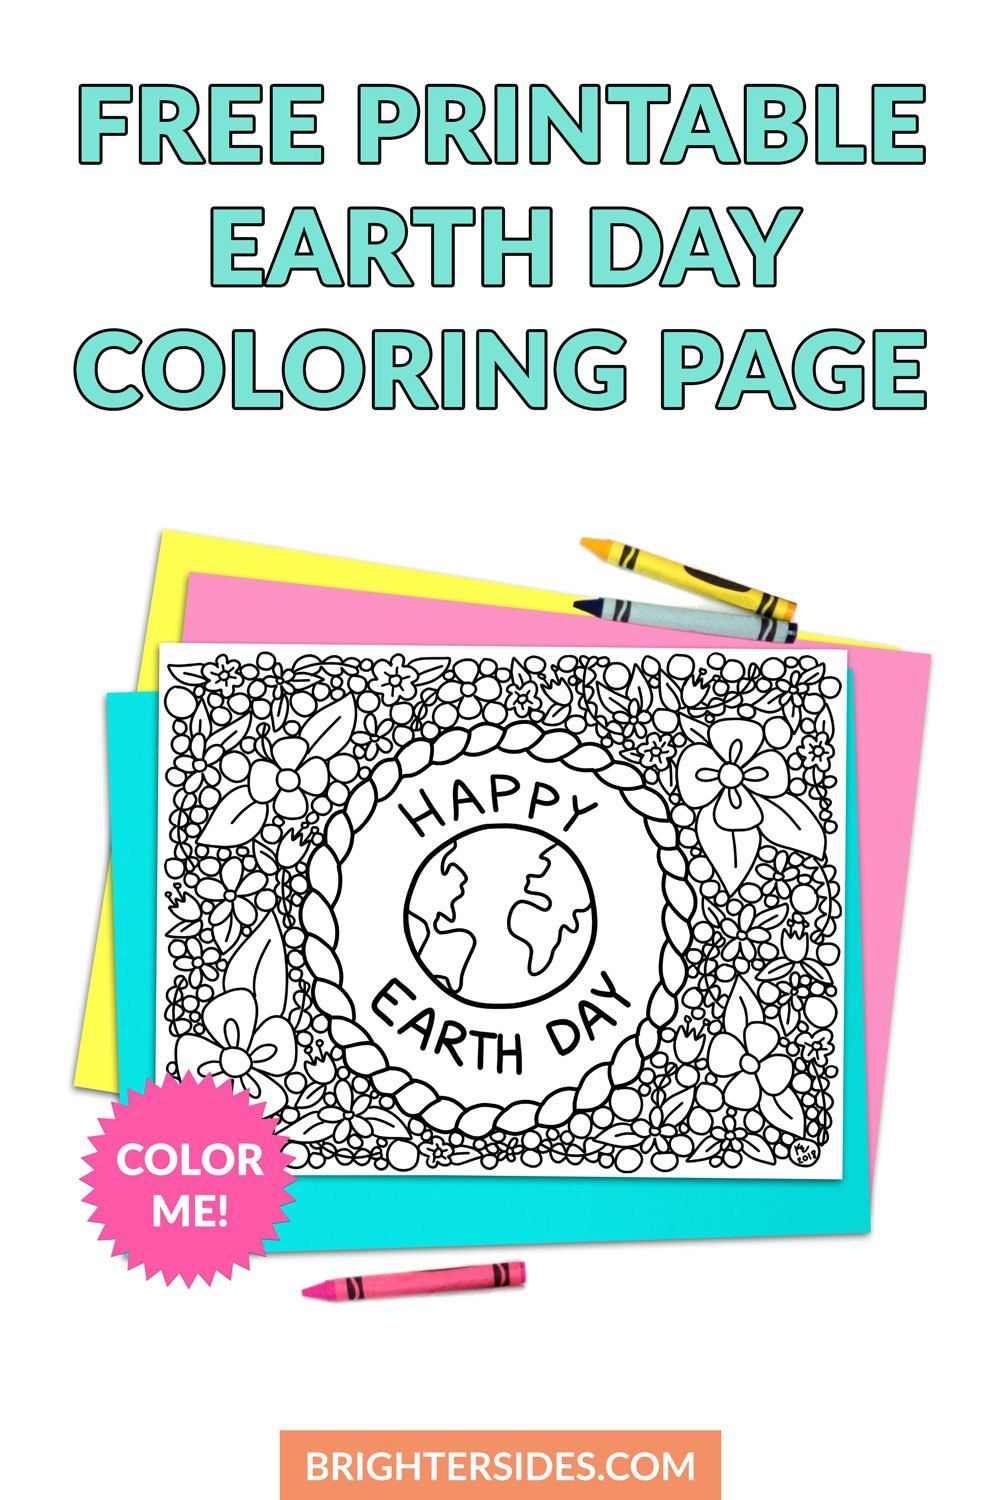 Free earth day coloring page printable earth day